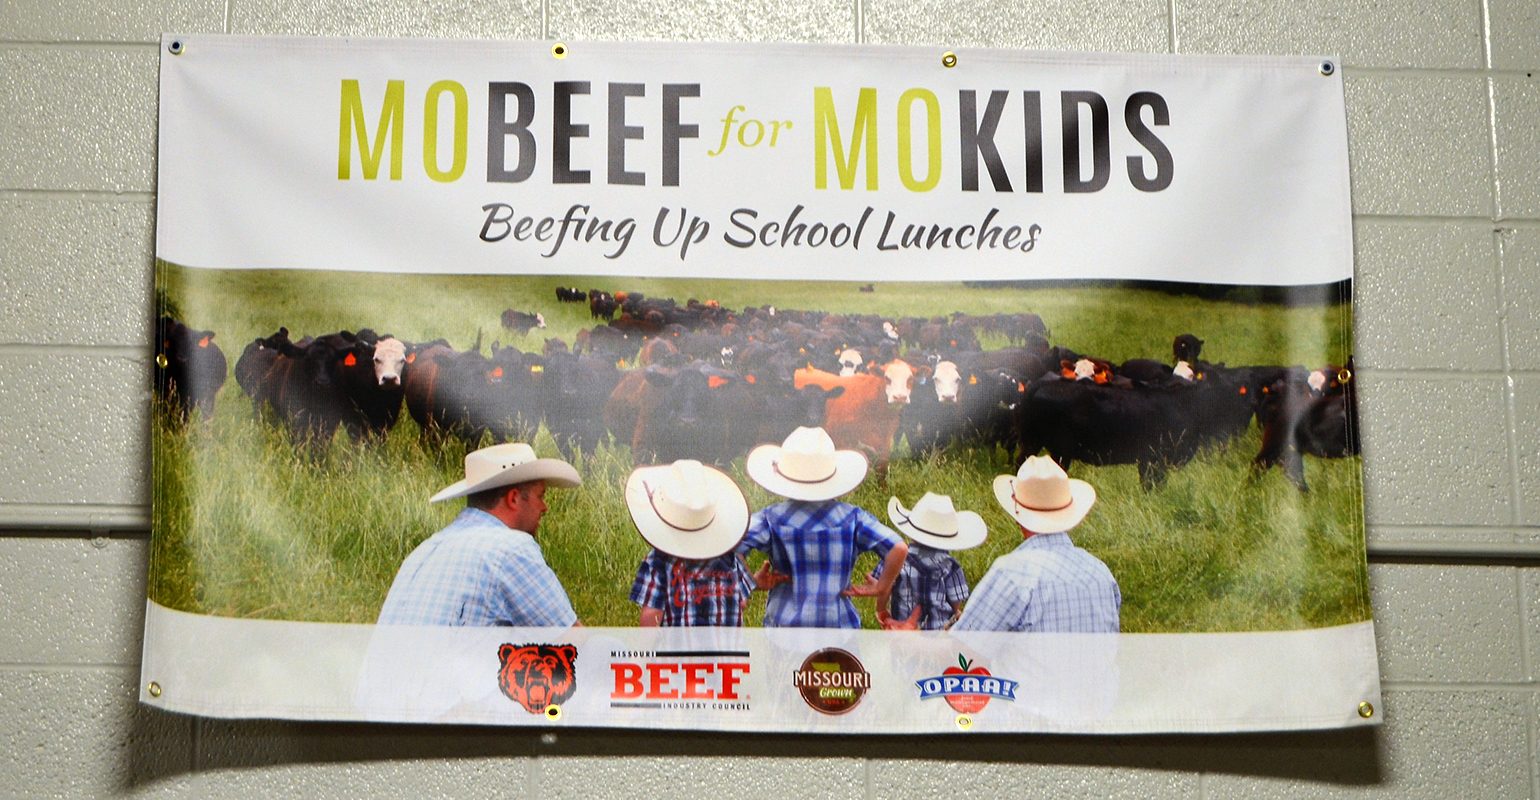 MoBeef for MoKids banner